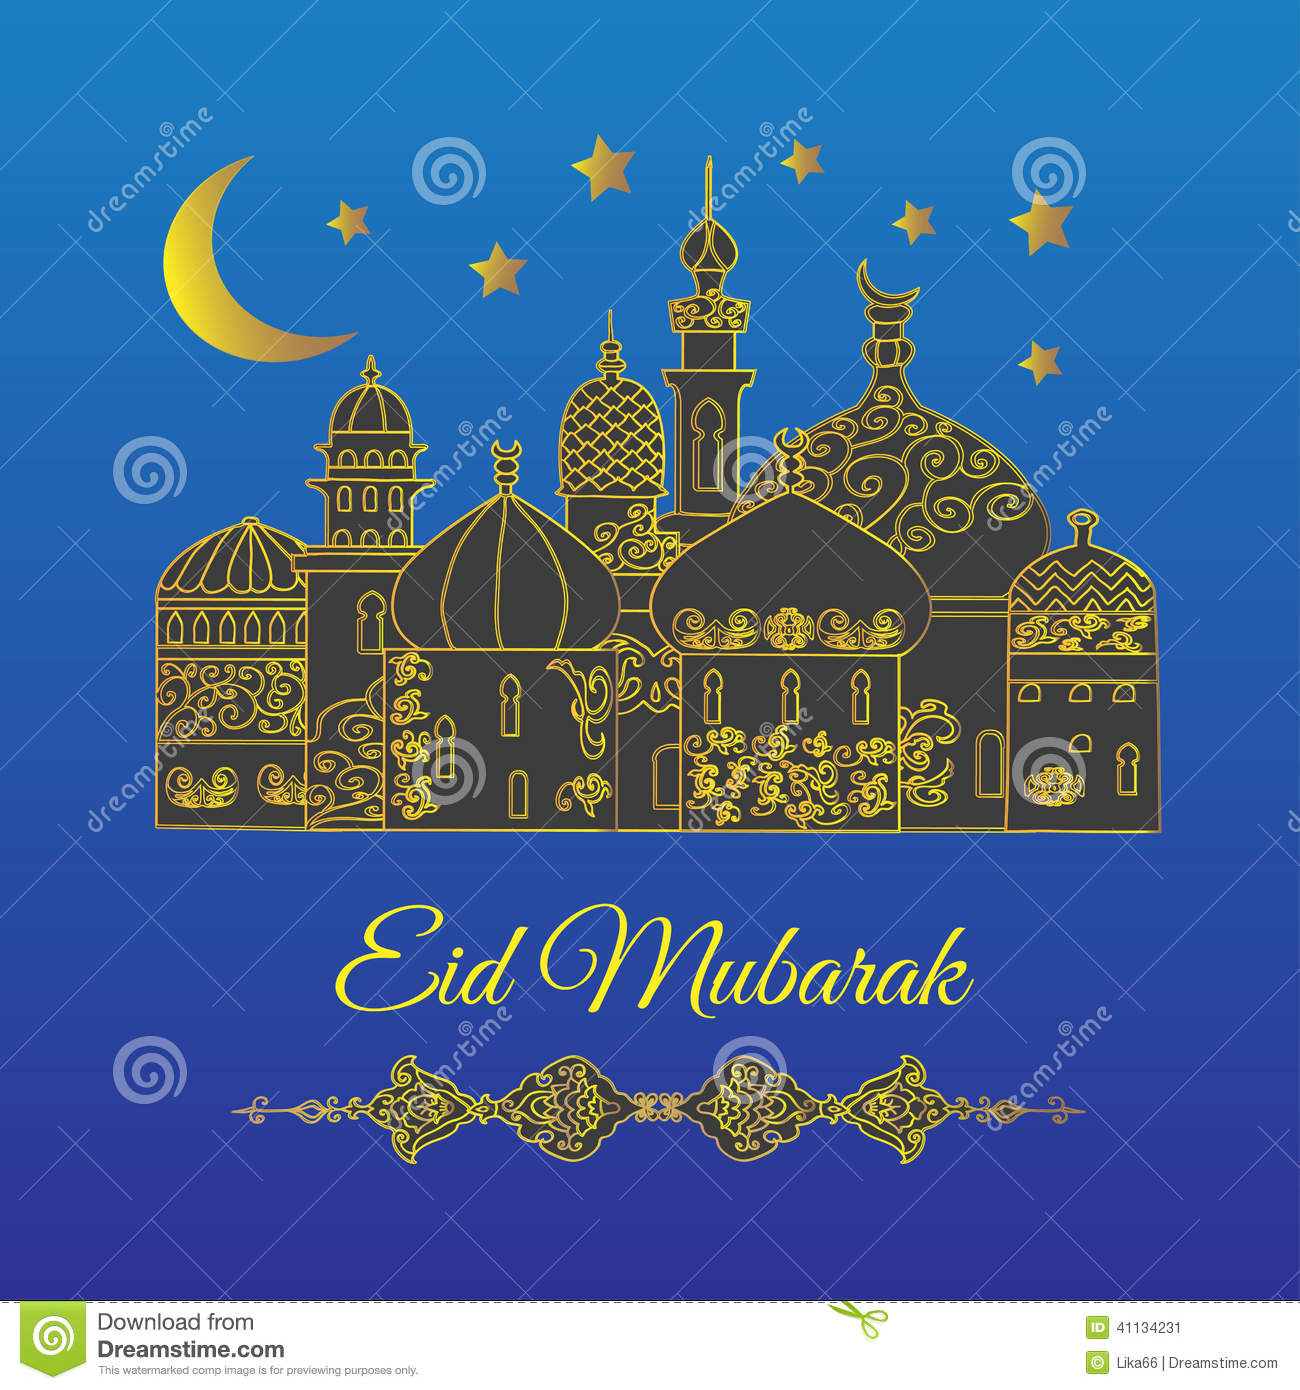 Popular eid mubarak greetings cards most selected eid mubarak eid mubarak cards uk kristyandbryce Image collections